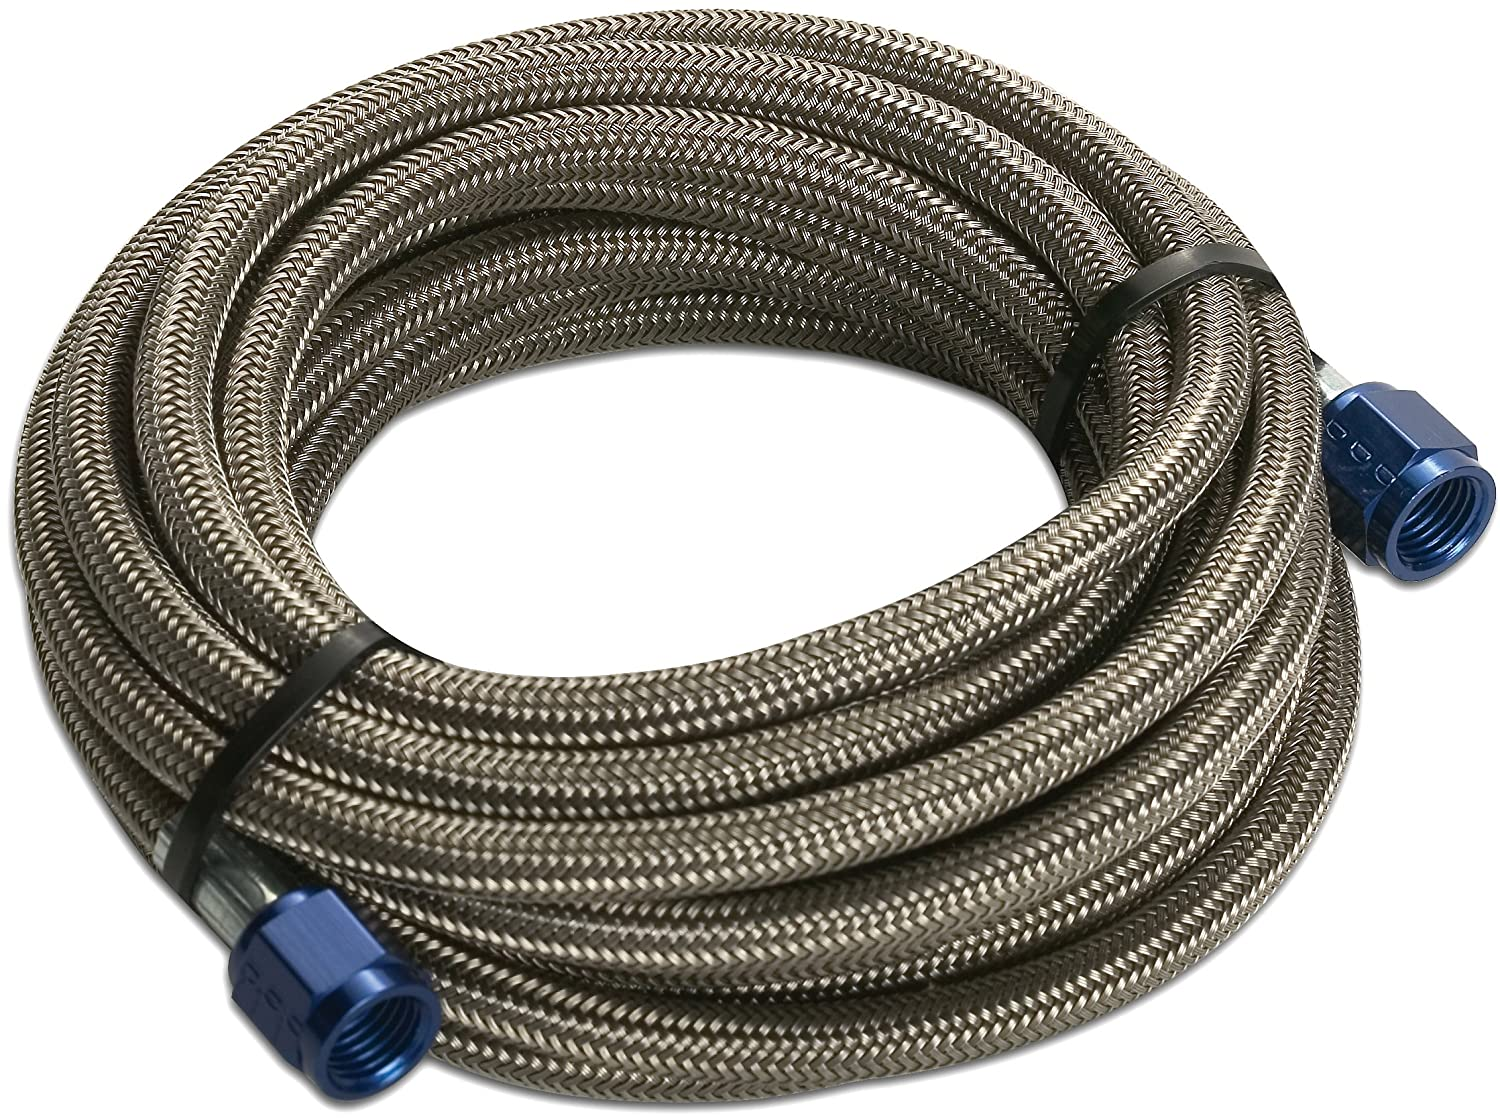 14 4AN Female x 4AN Female Design Engineering 080201 CryO2 Stainless Steel Braided Hose